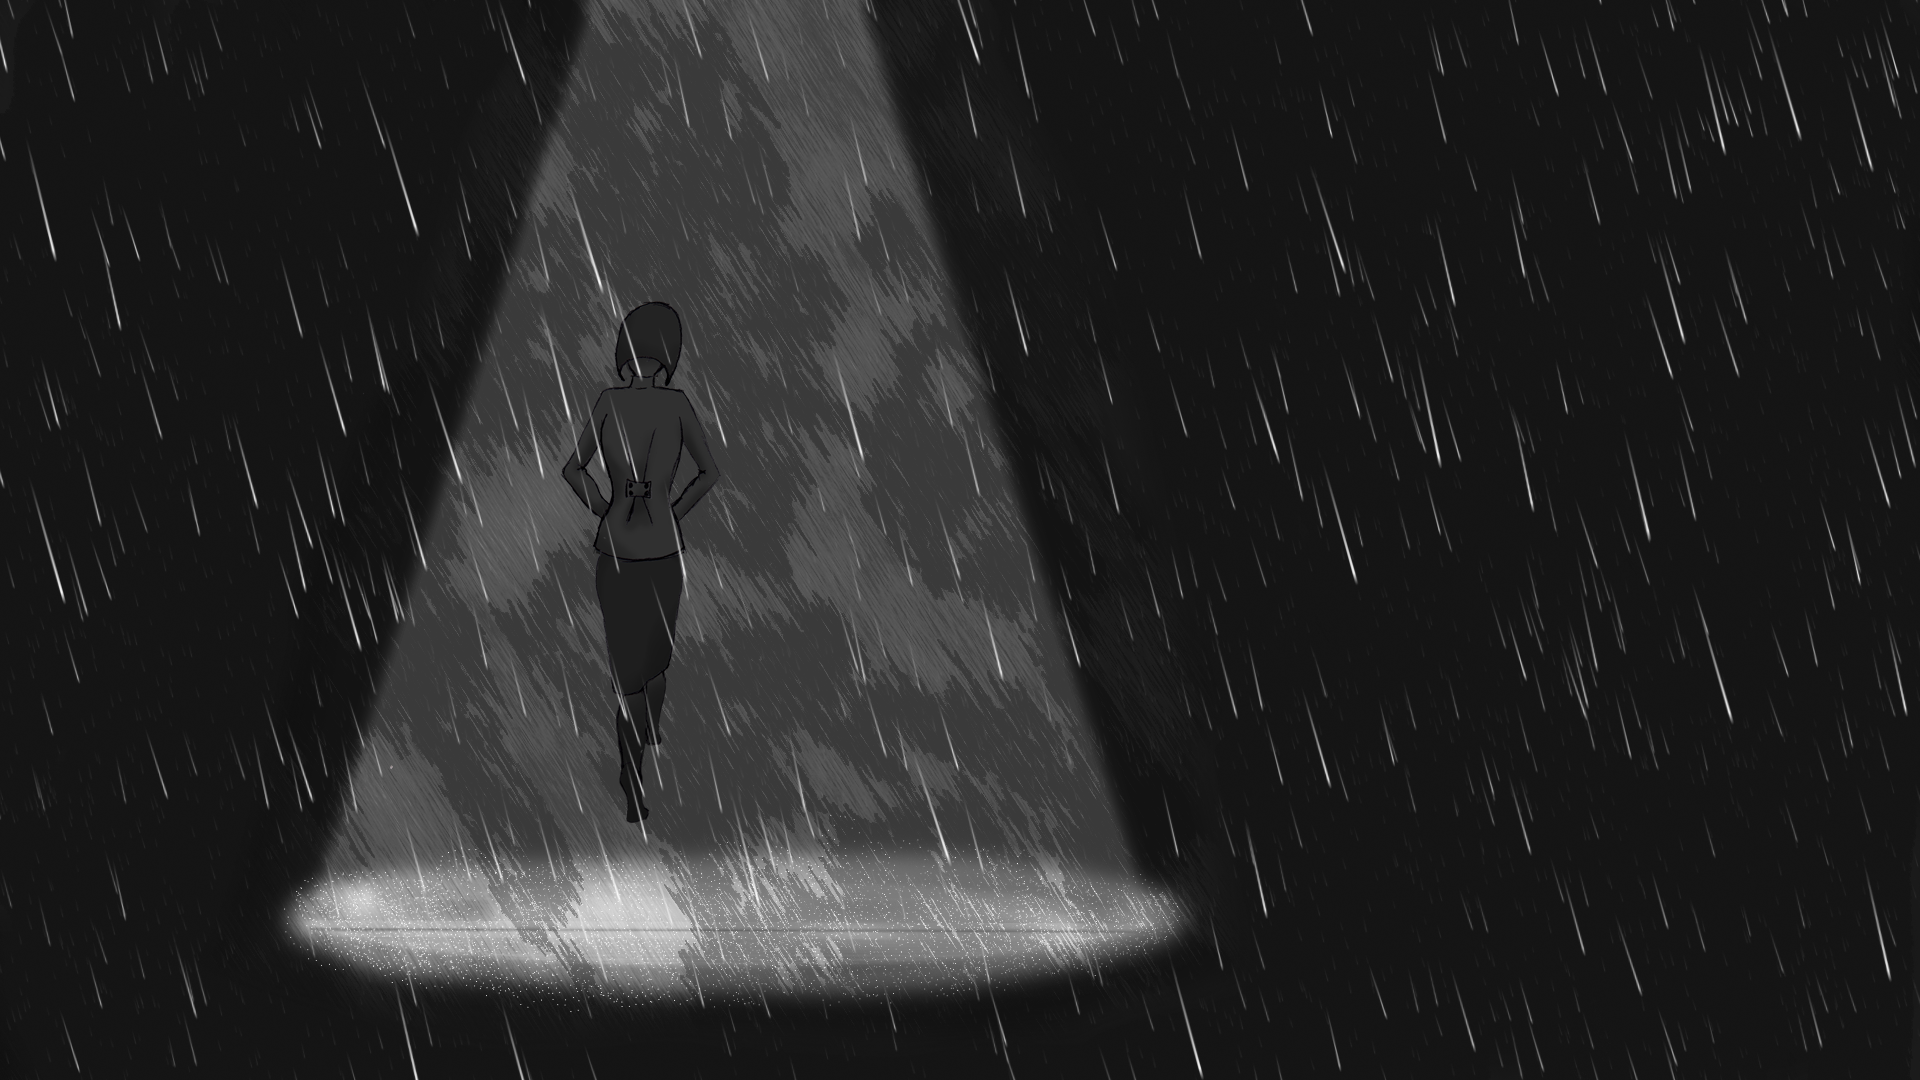 In the Rain - image 12 - student project